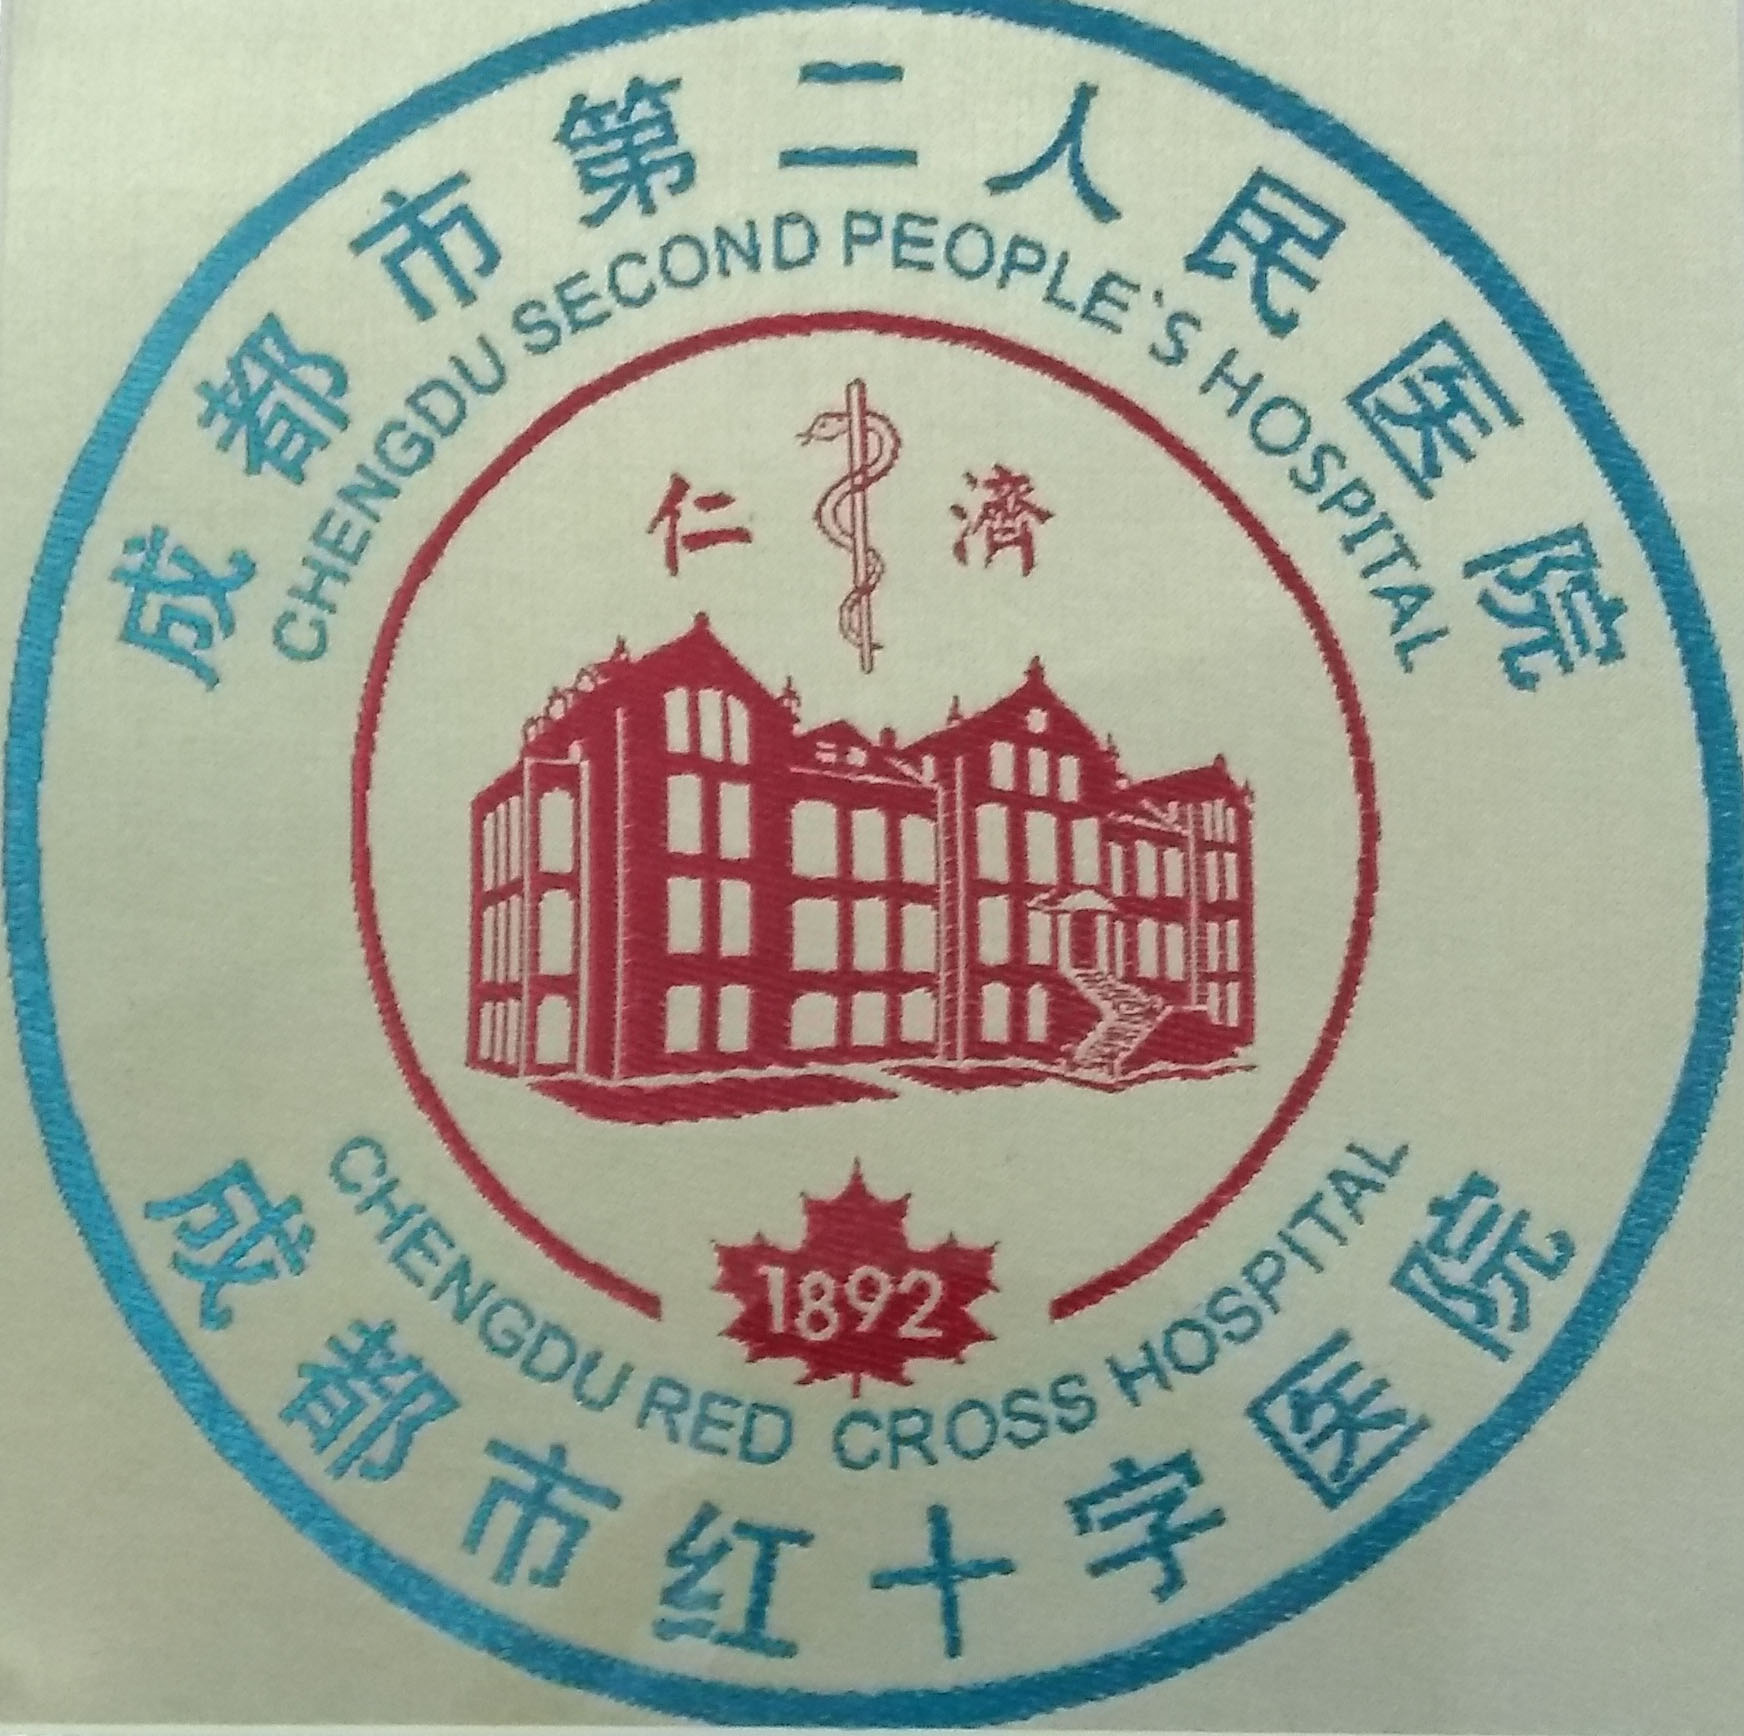 Official seal for Chengdu Second People's Hospital